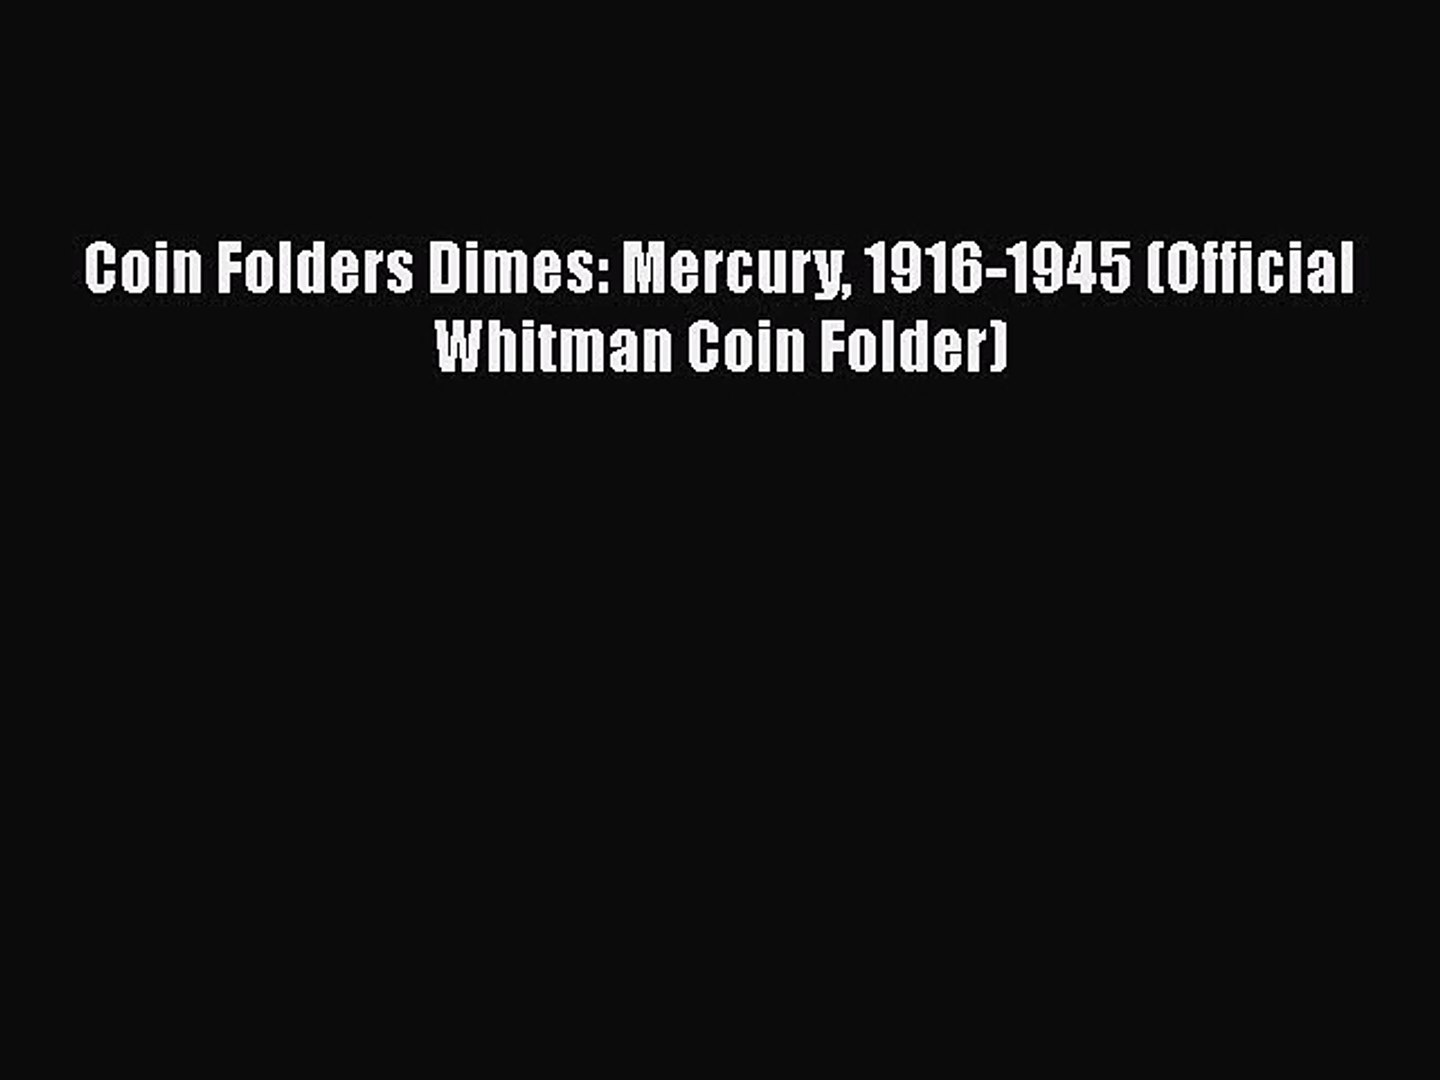 [PDF Download] Coin Folders Dimes: Mercury 1916-1945 (Official Whitman Coin Folder) [Download]